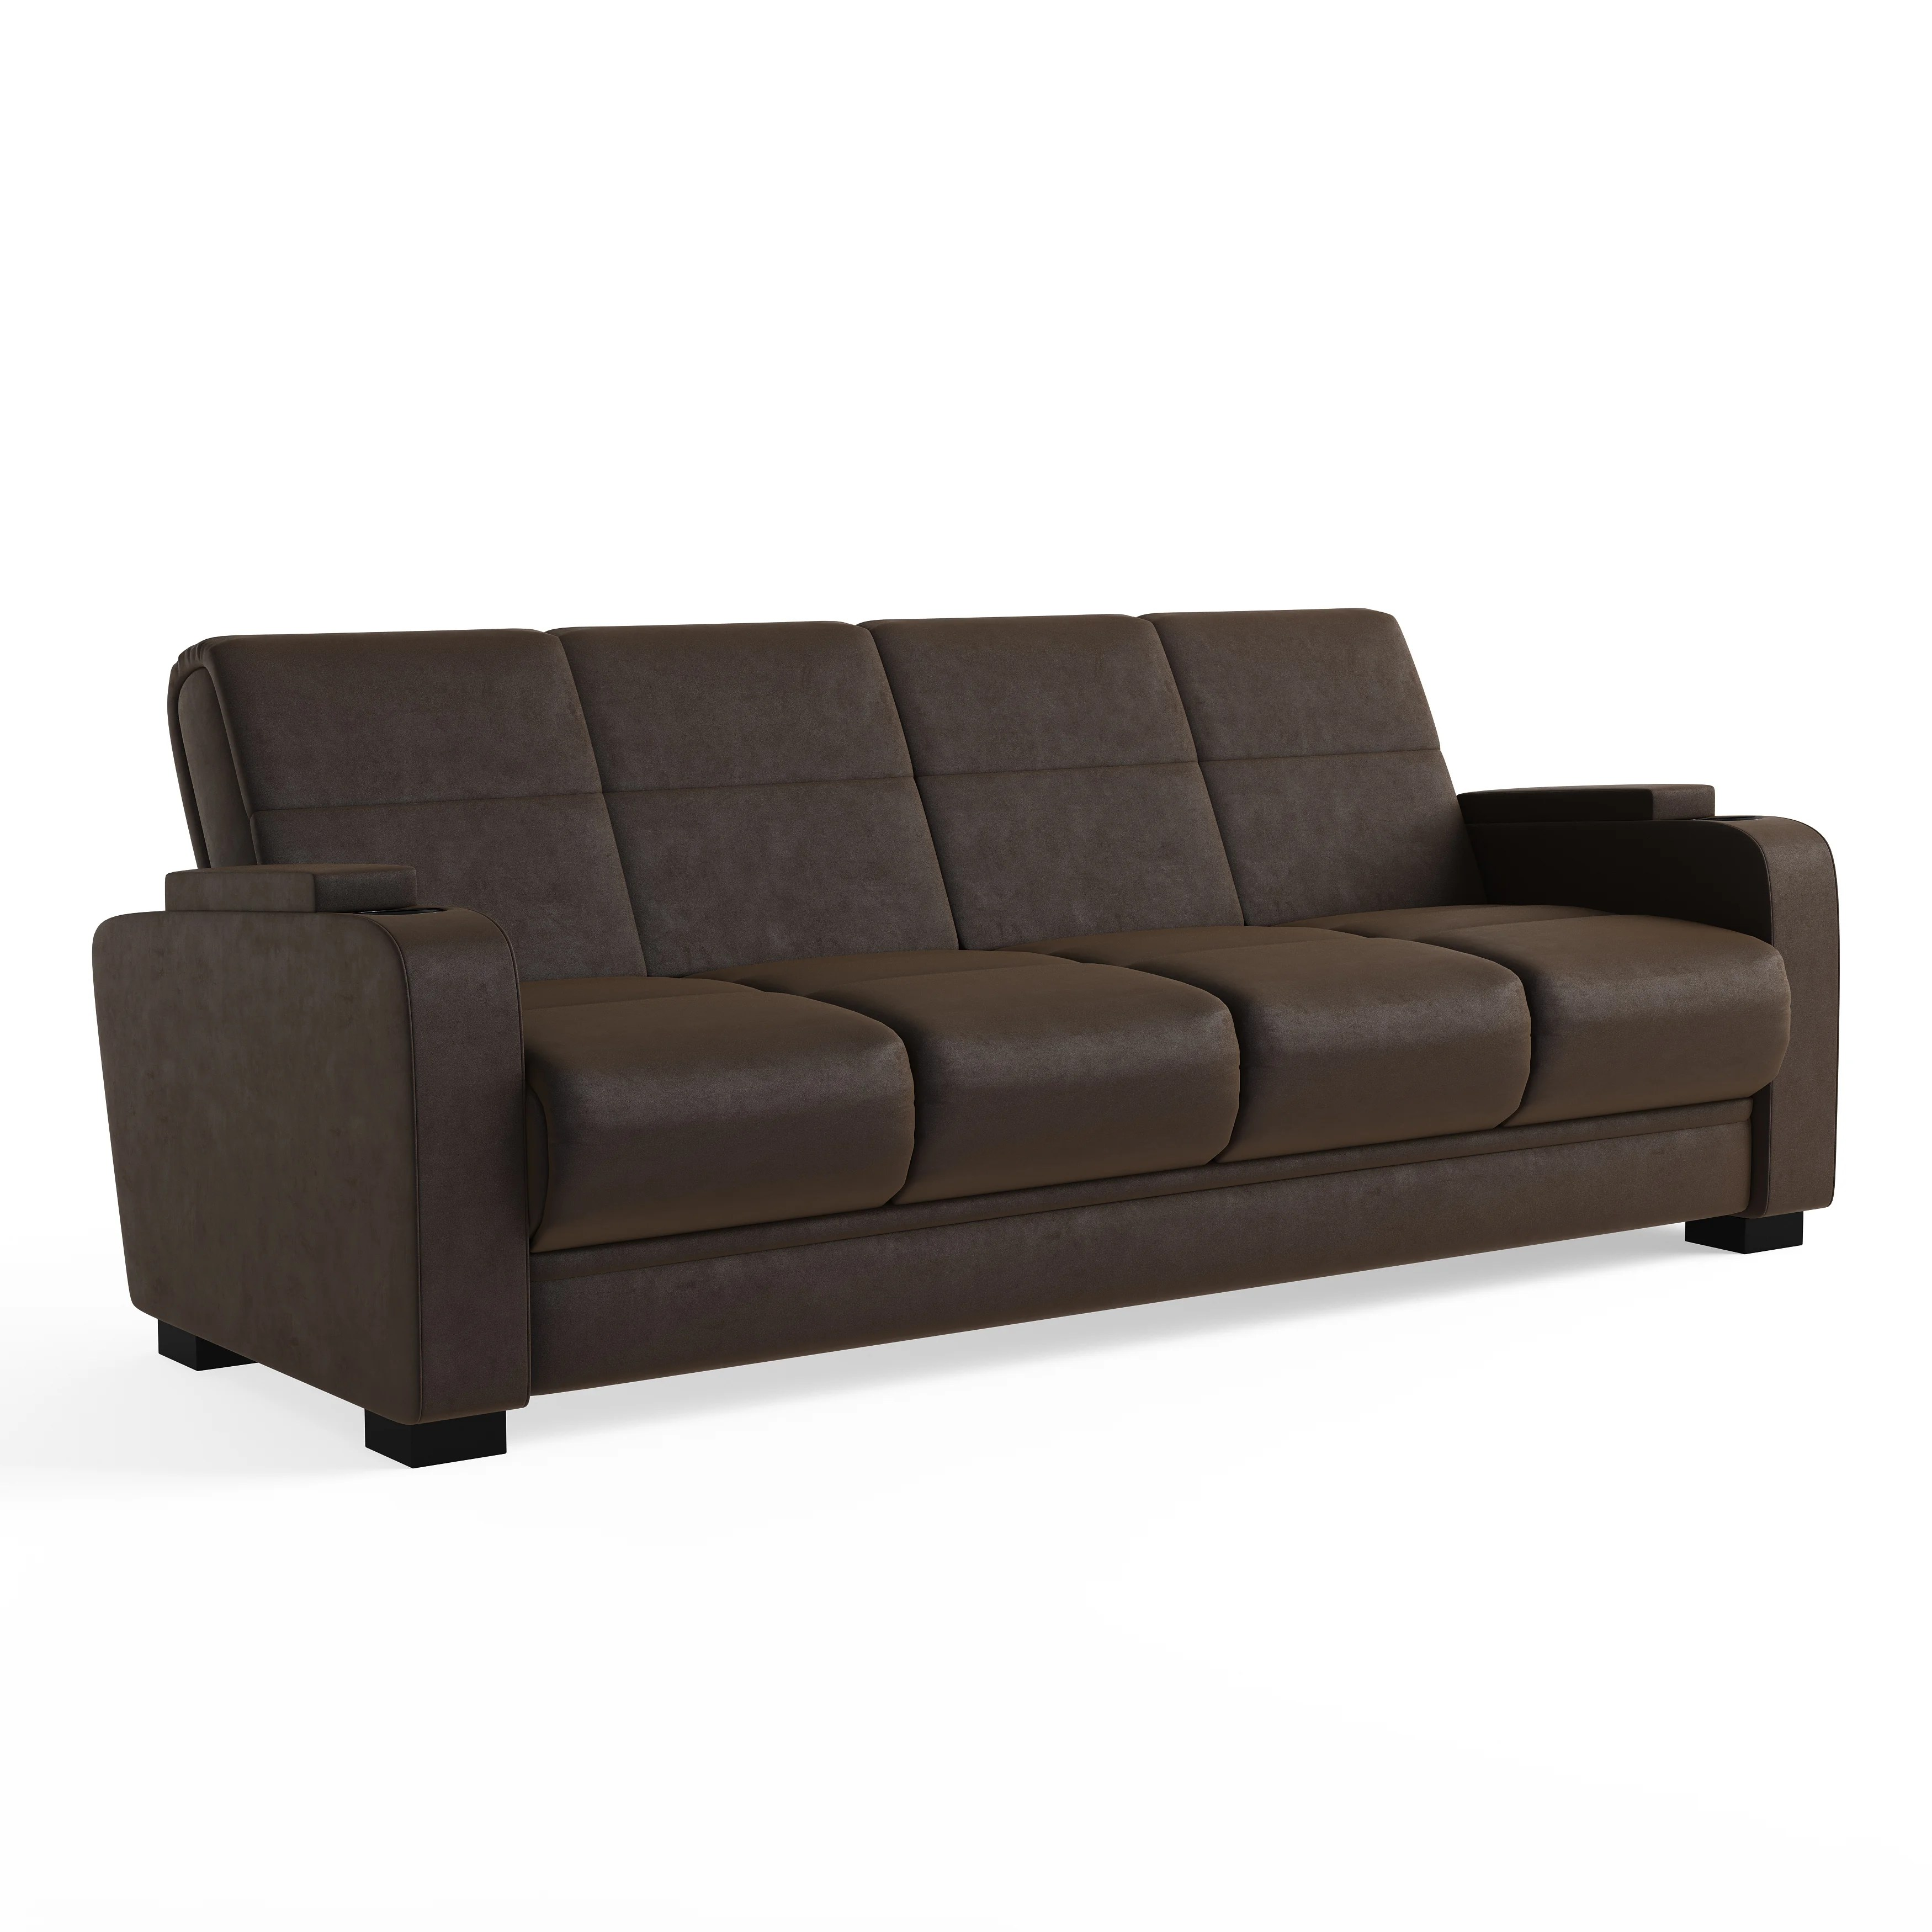 Garden Grove Sofa Sofa Bed Couch With Storage Baci Living Room